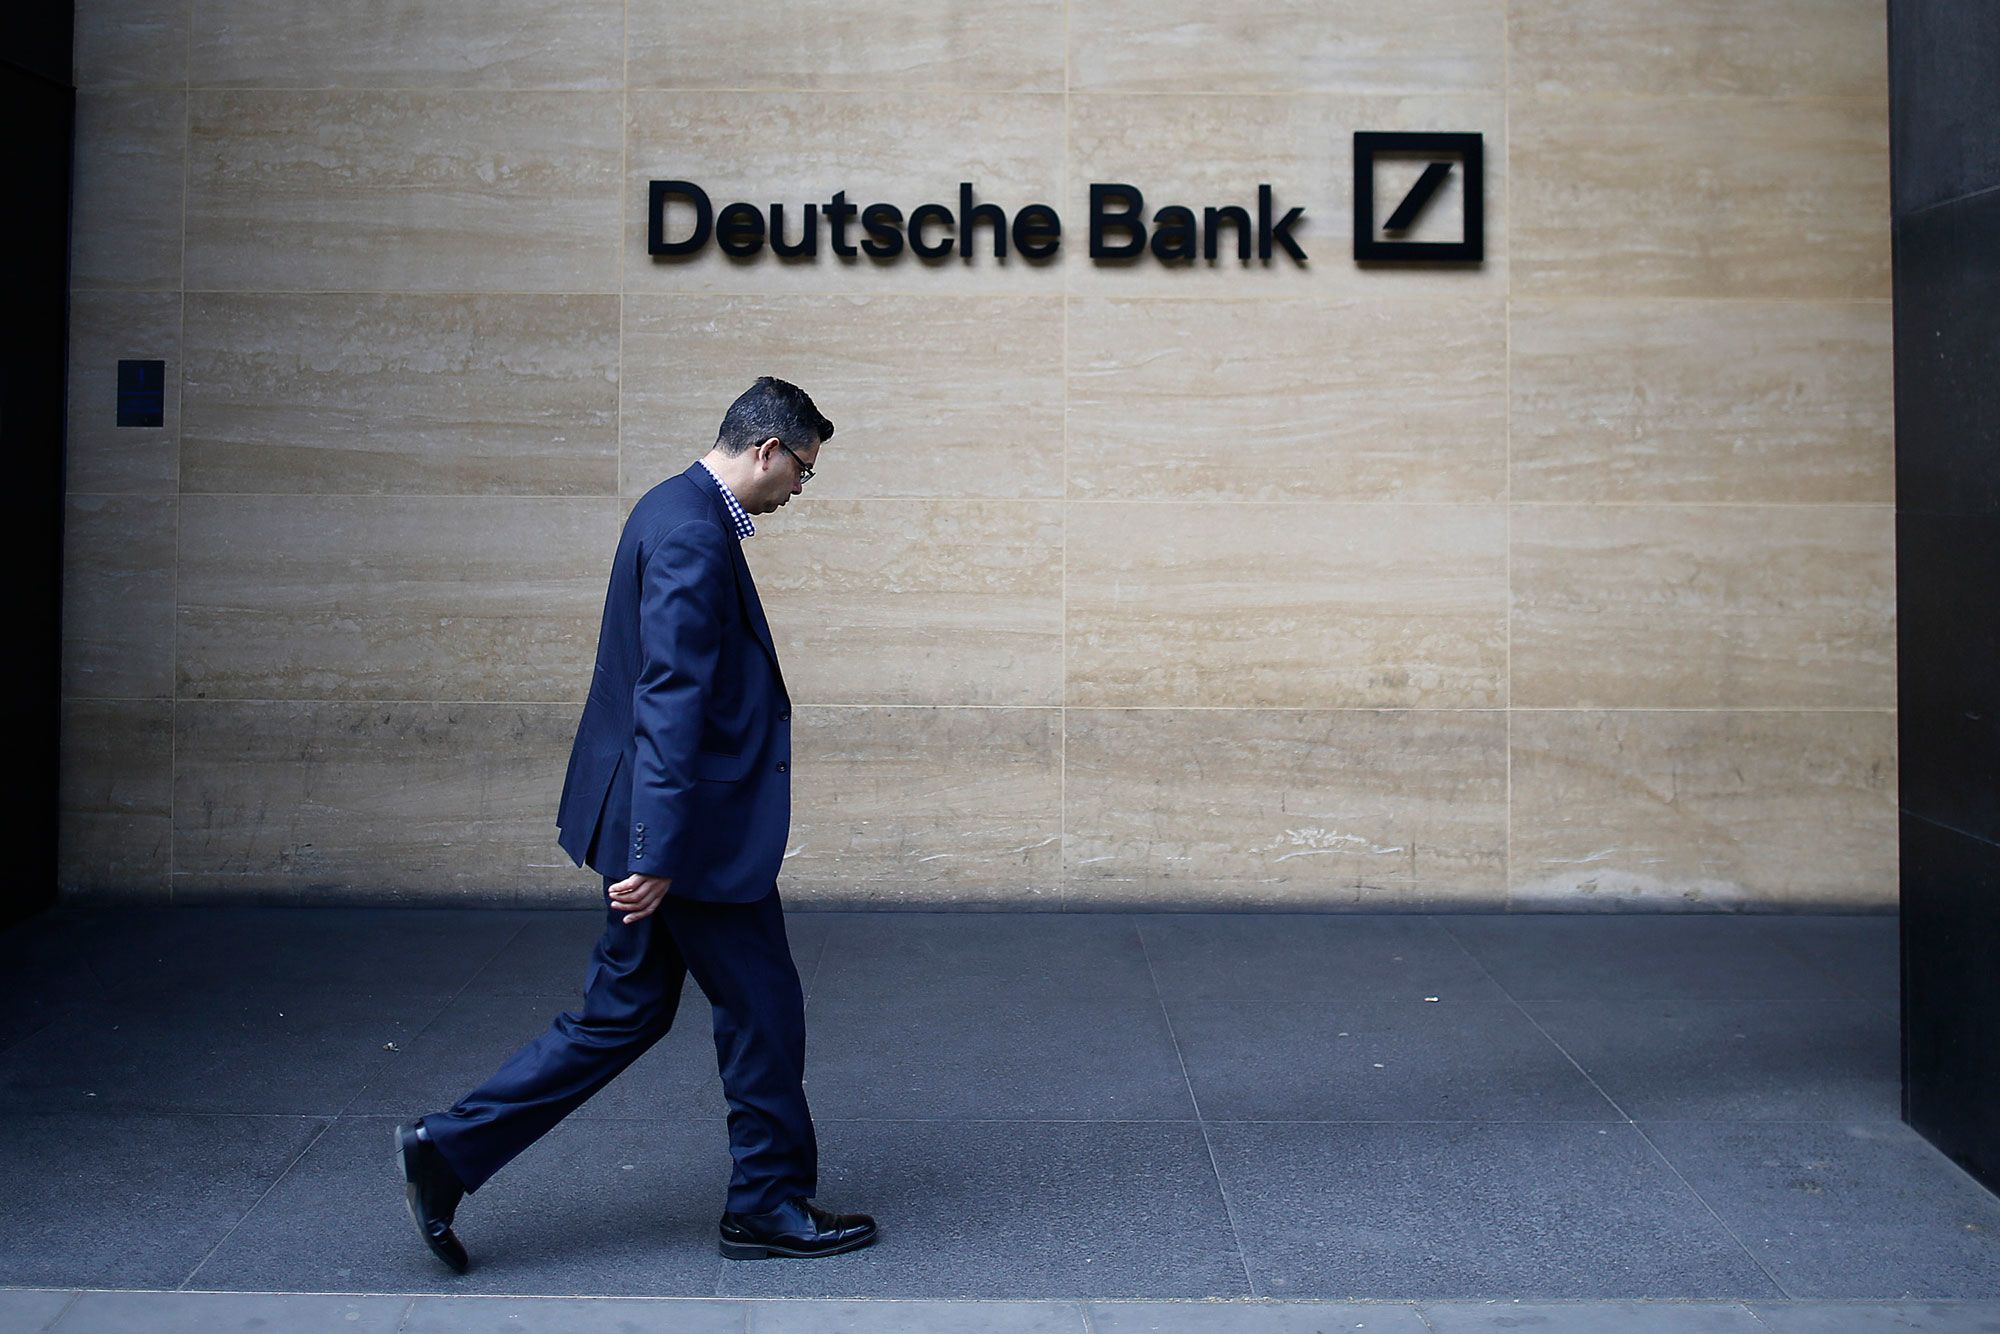 Deutsche Bank shares hit record low as UBS downgrades stock to 'sell'